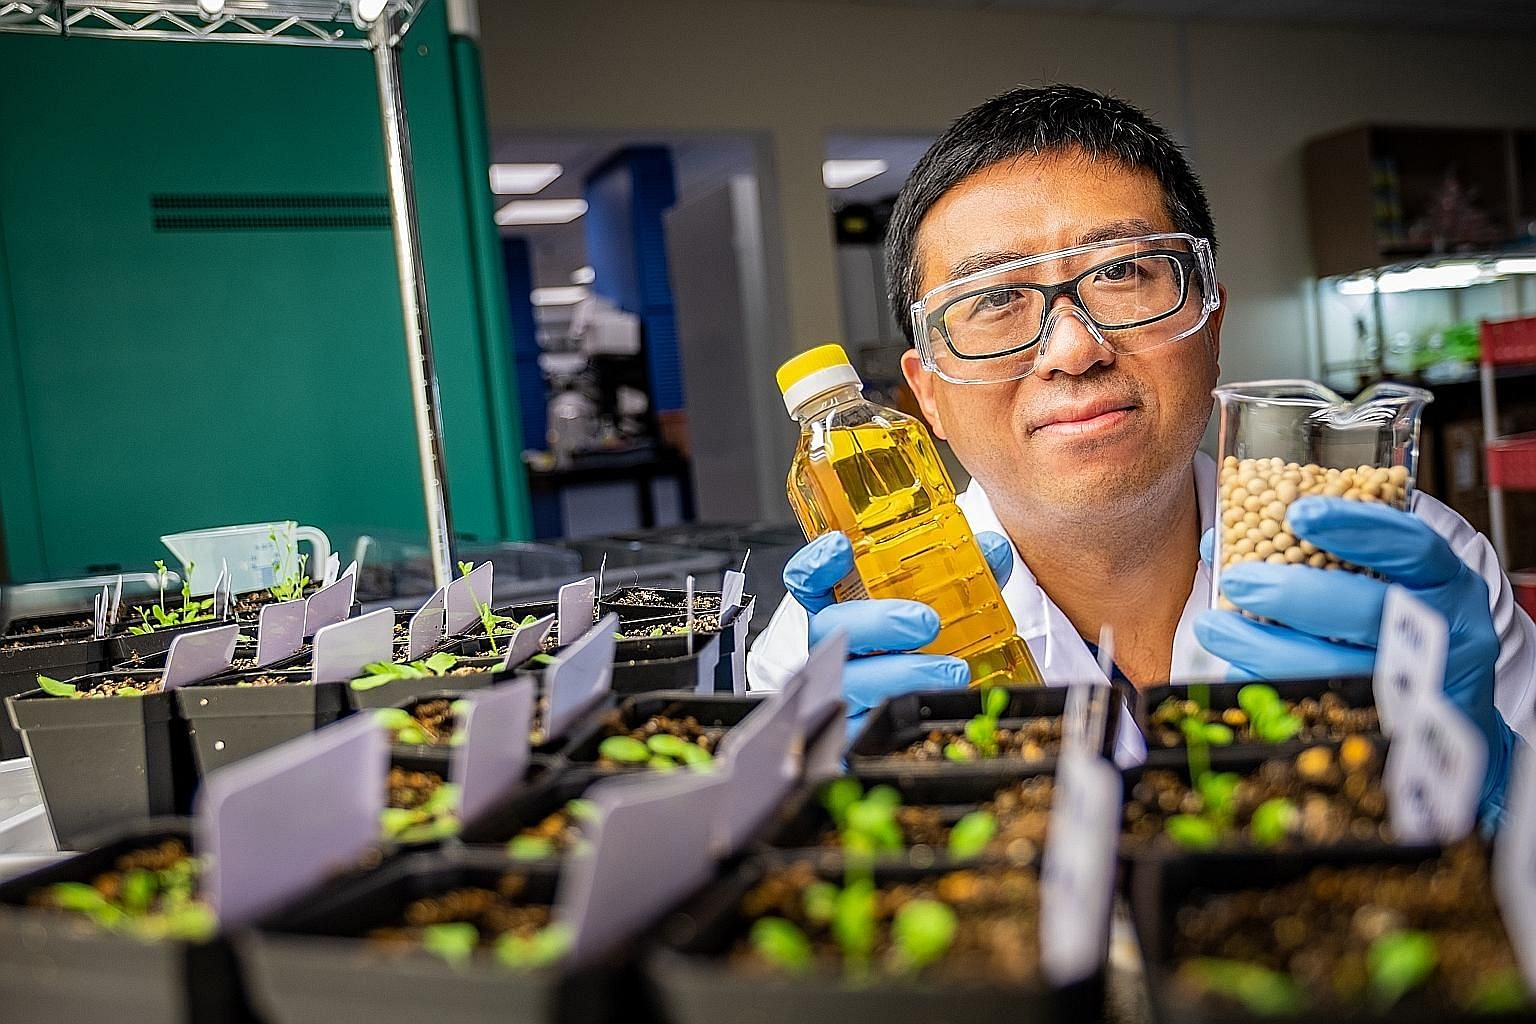 Top: Nanyang Technological University Assistant Professor Ma Wei with a bottle of cooking oil and a beaker of modified seeds in his lab. Above: Prof Ma injecting a solution into a test plant's leaf. PHOTOS: NANYANG TECHNOLOGICAL UNIVERSITY